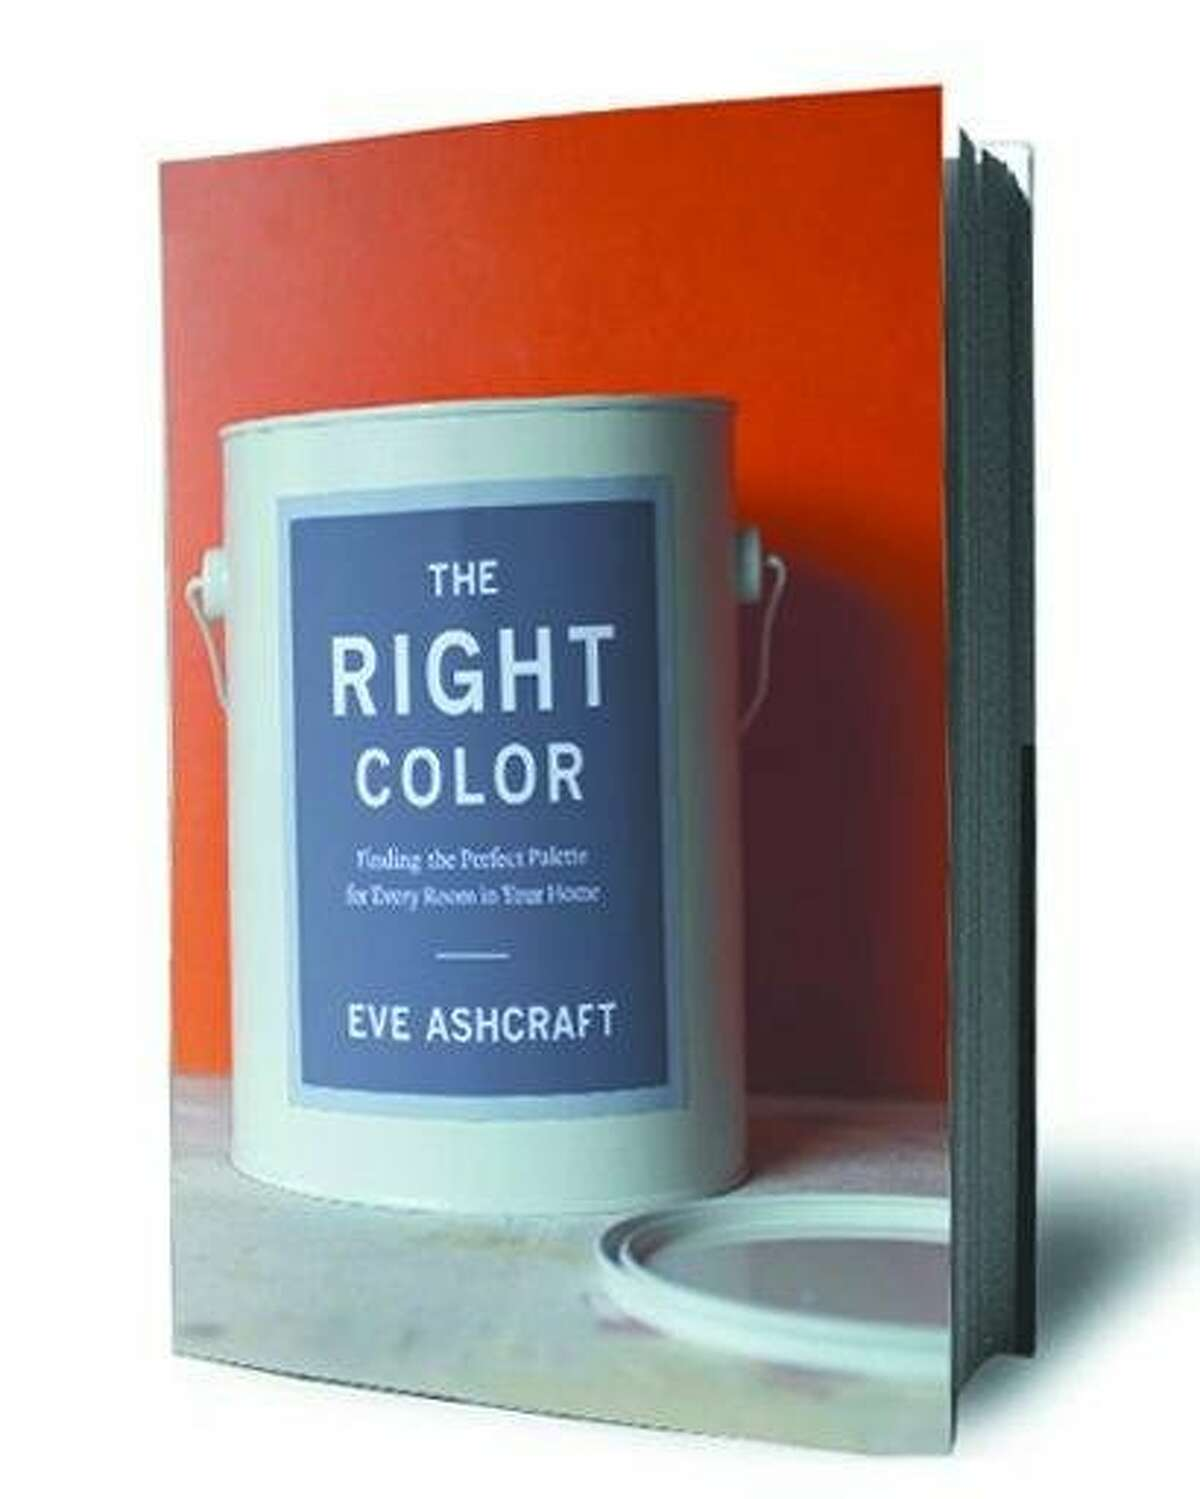 Book cover for The Right Color by Eve Ashcraft